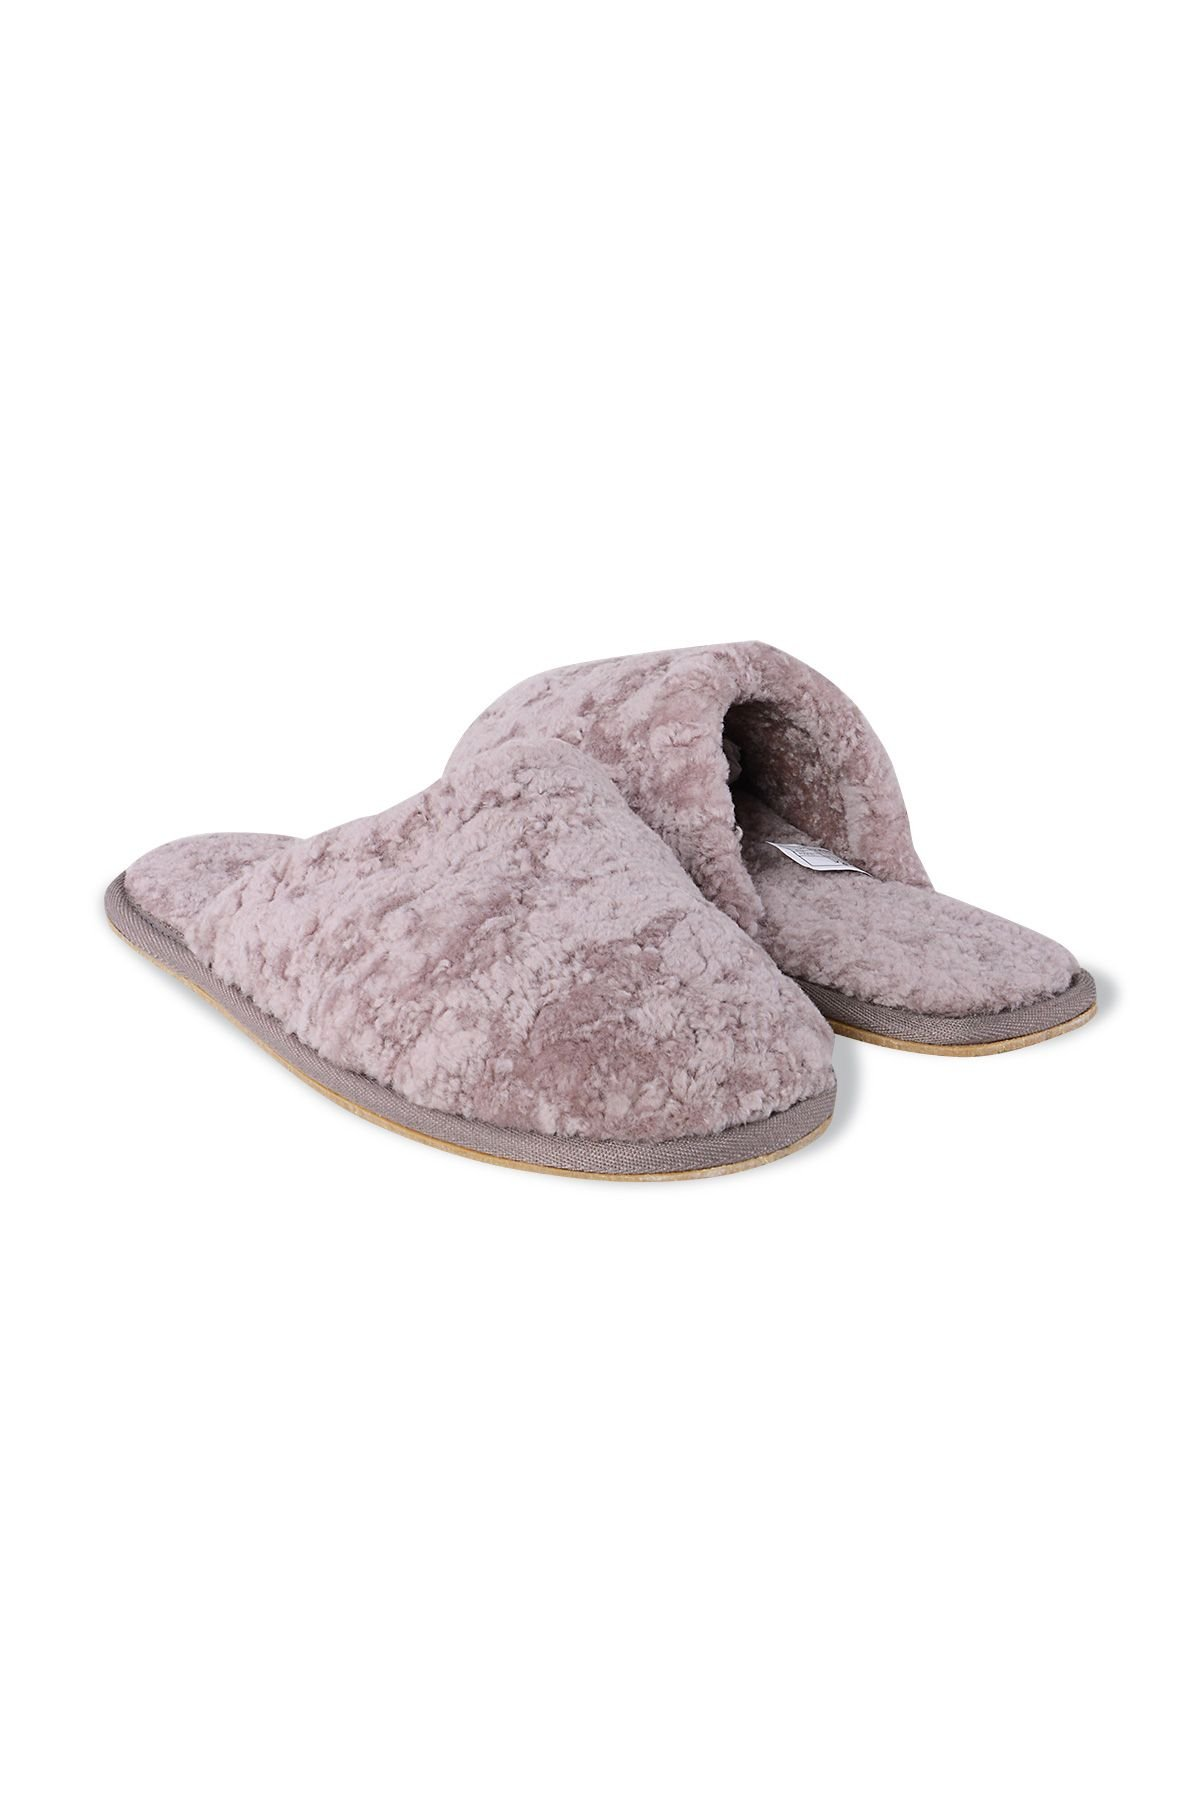 Pegia Genuine Leather & Shearling Women's Slippers 191101 Powdery